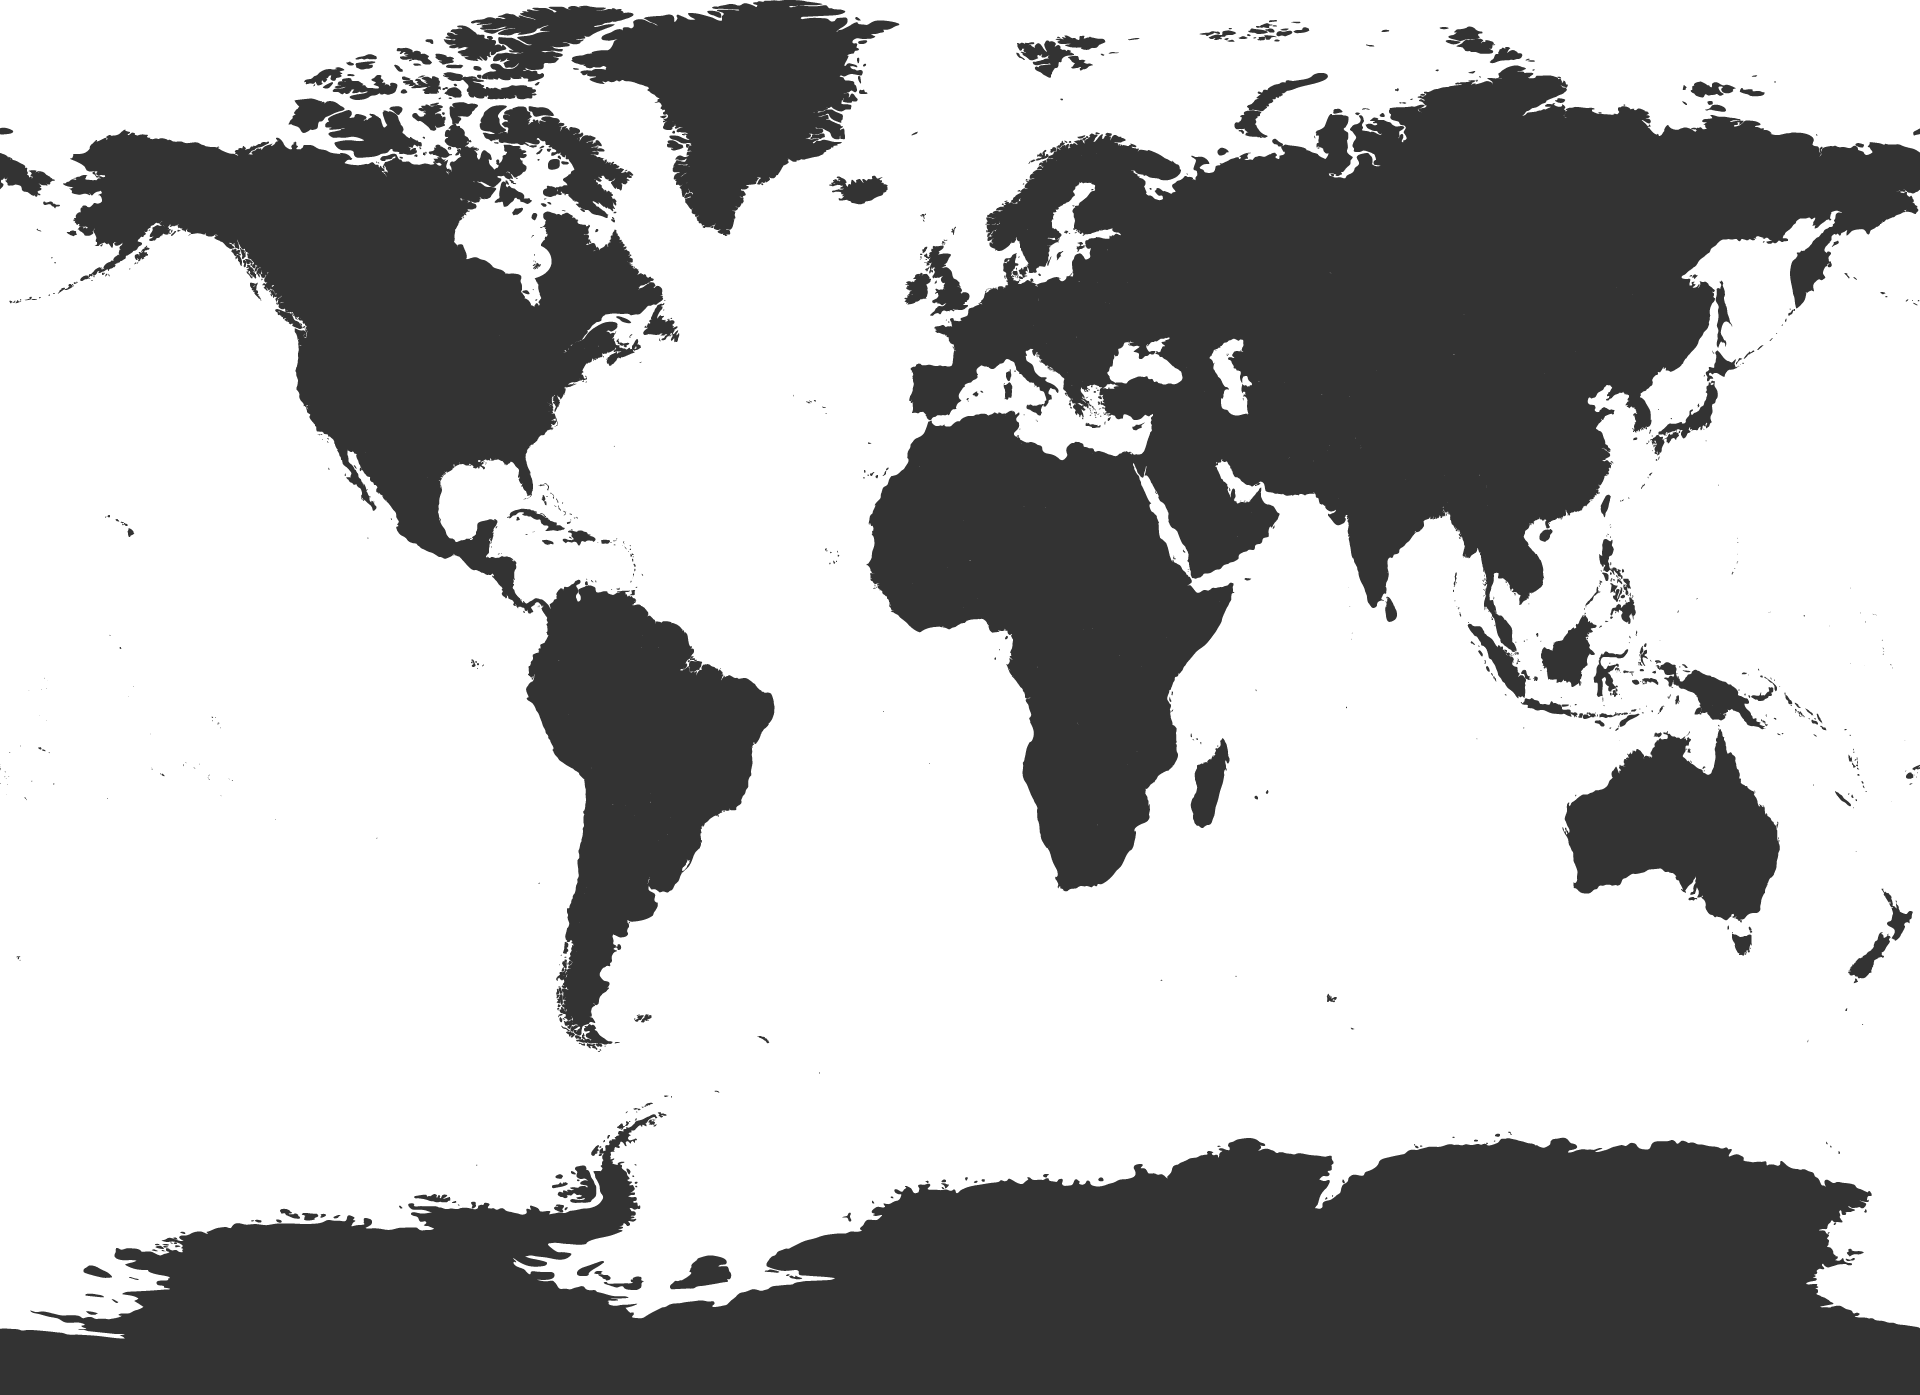 PNG Map Black And White - 79480